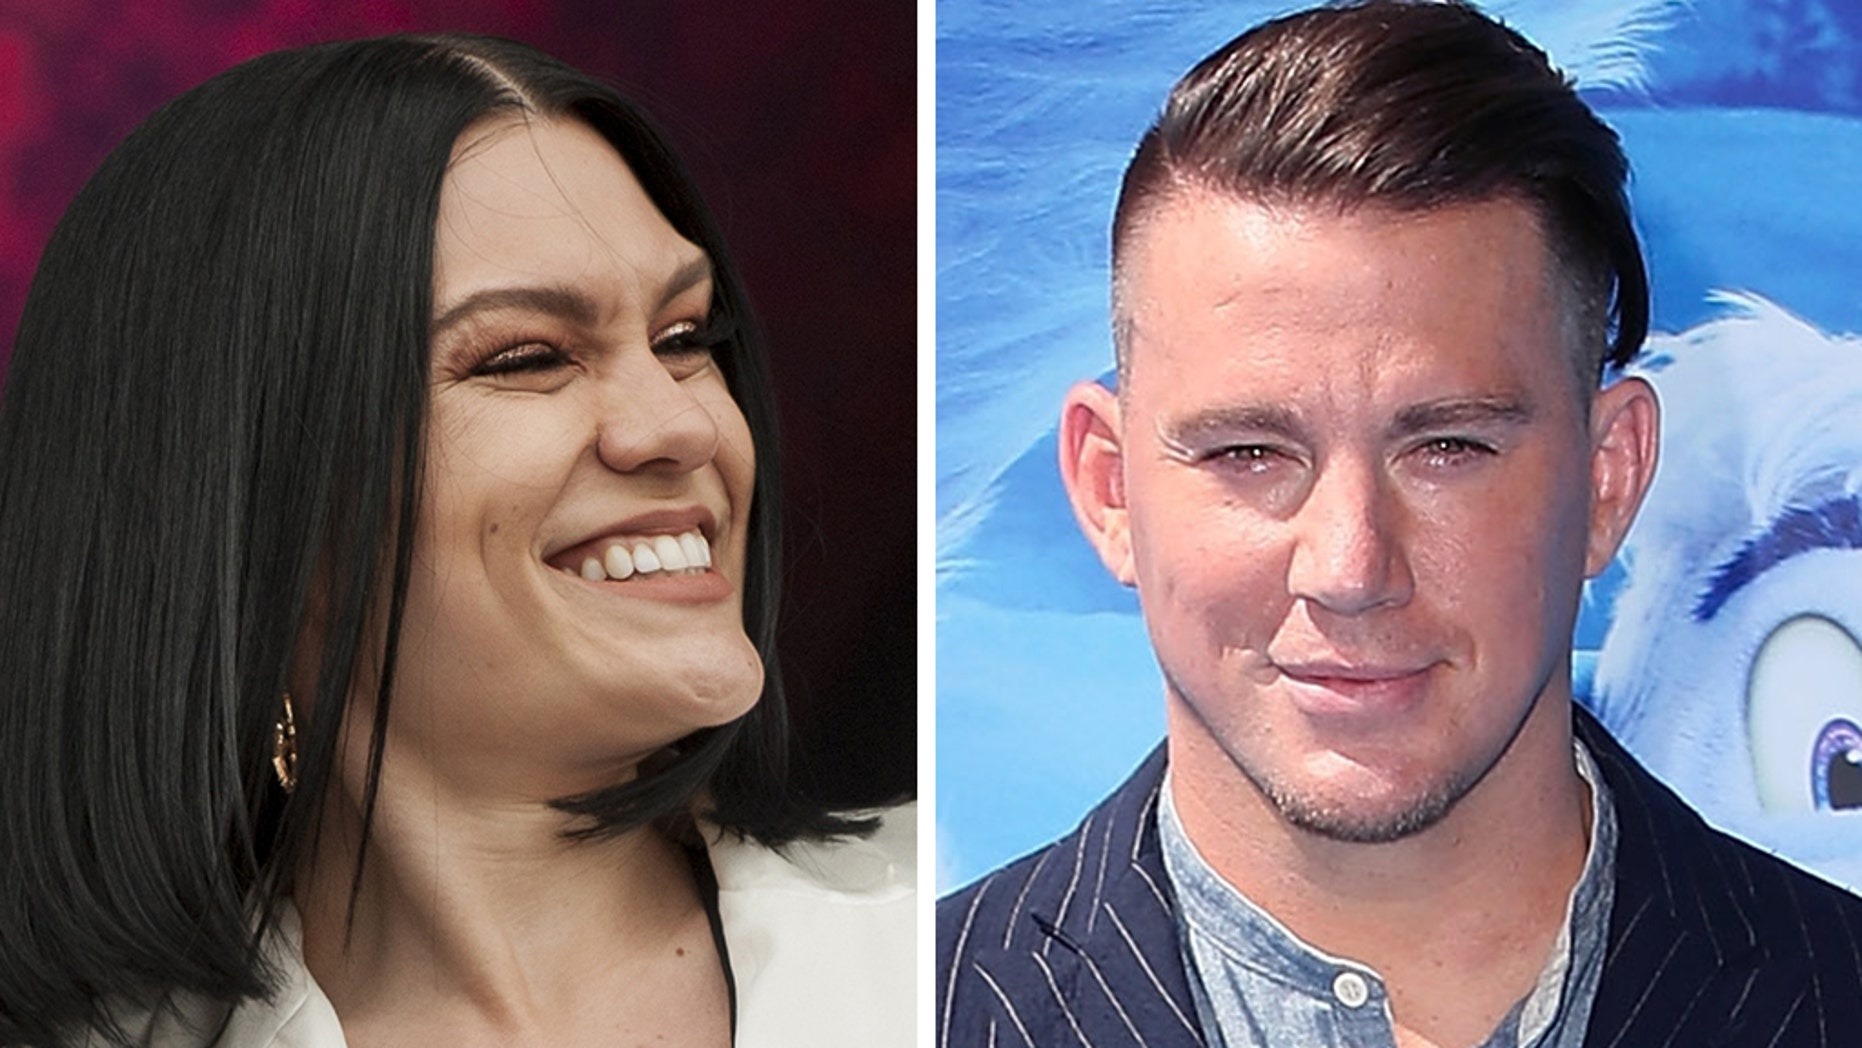 Channing Tatum is reportedly dating Jessie J